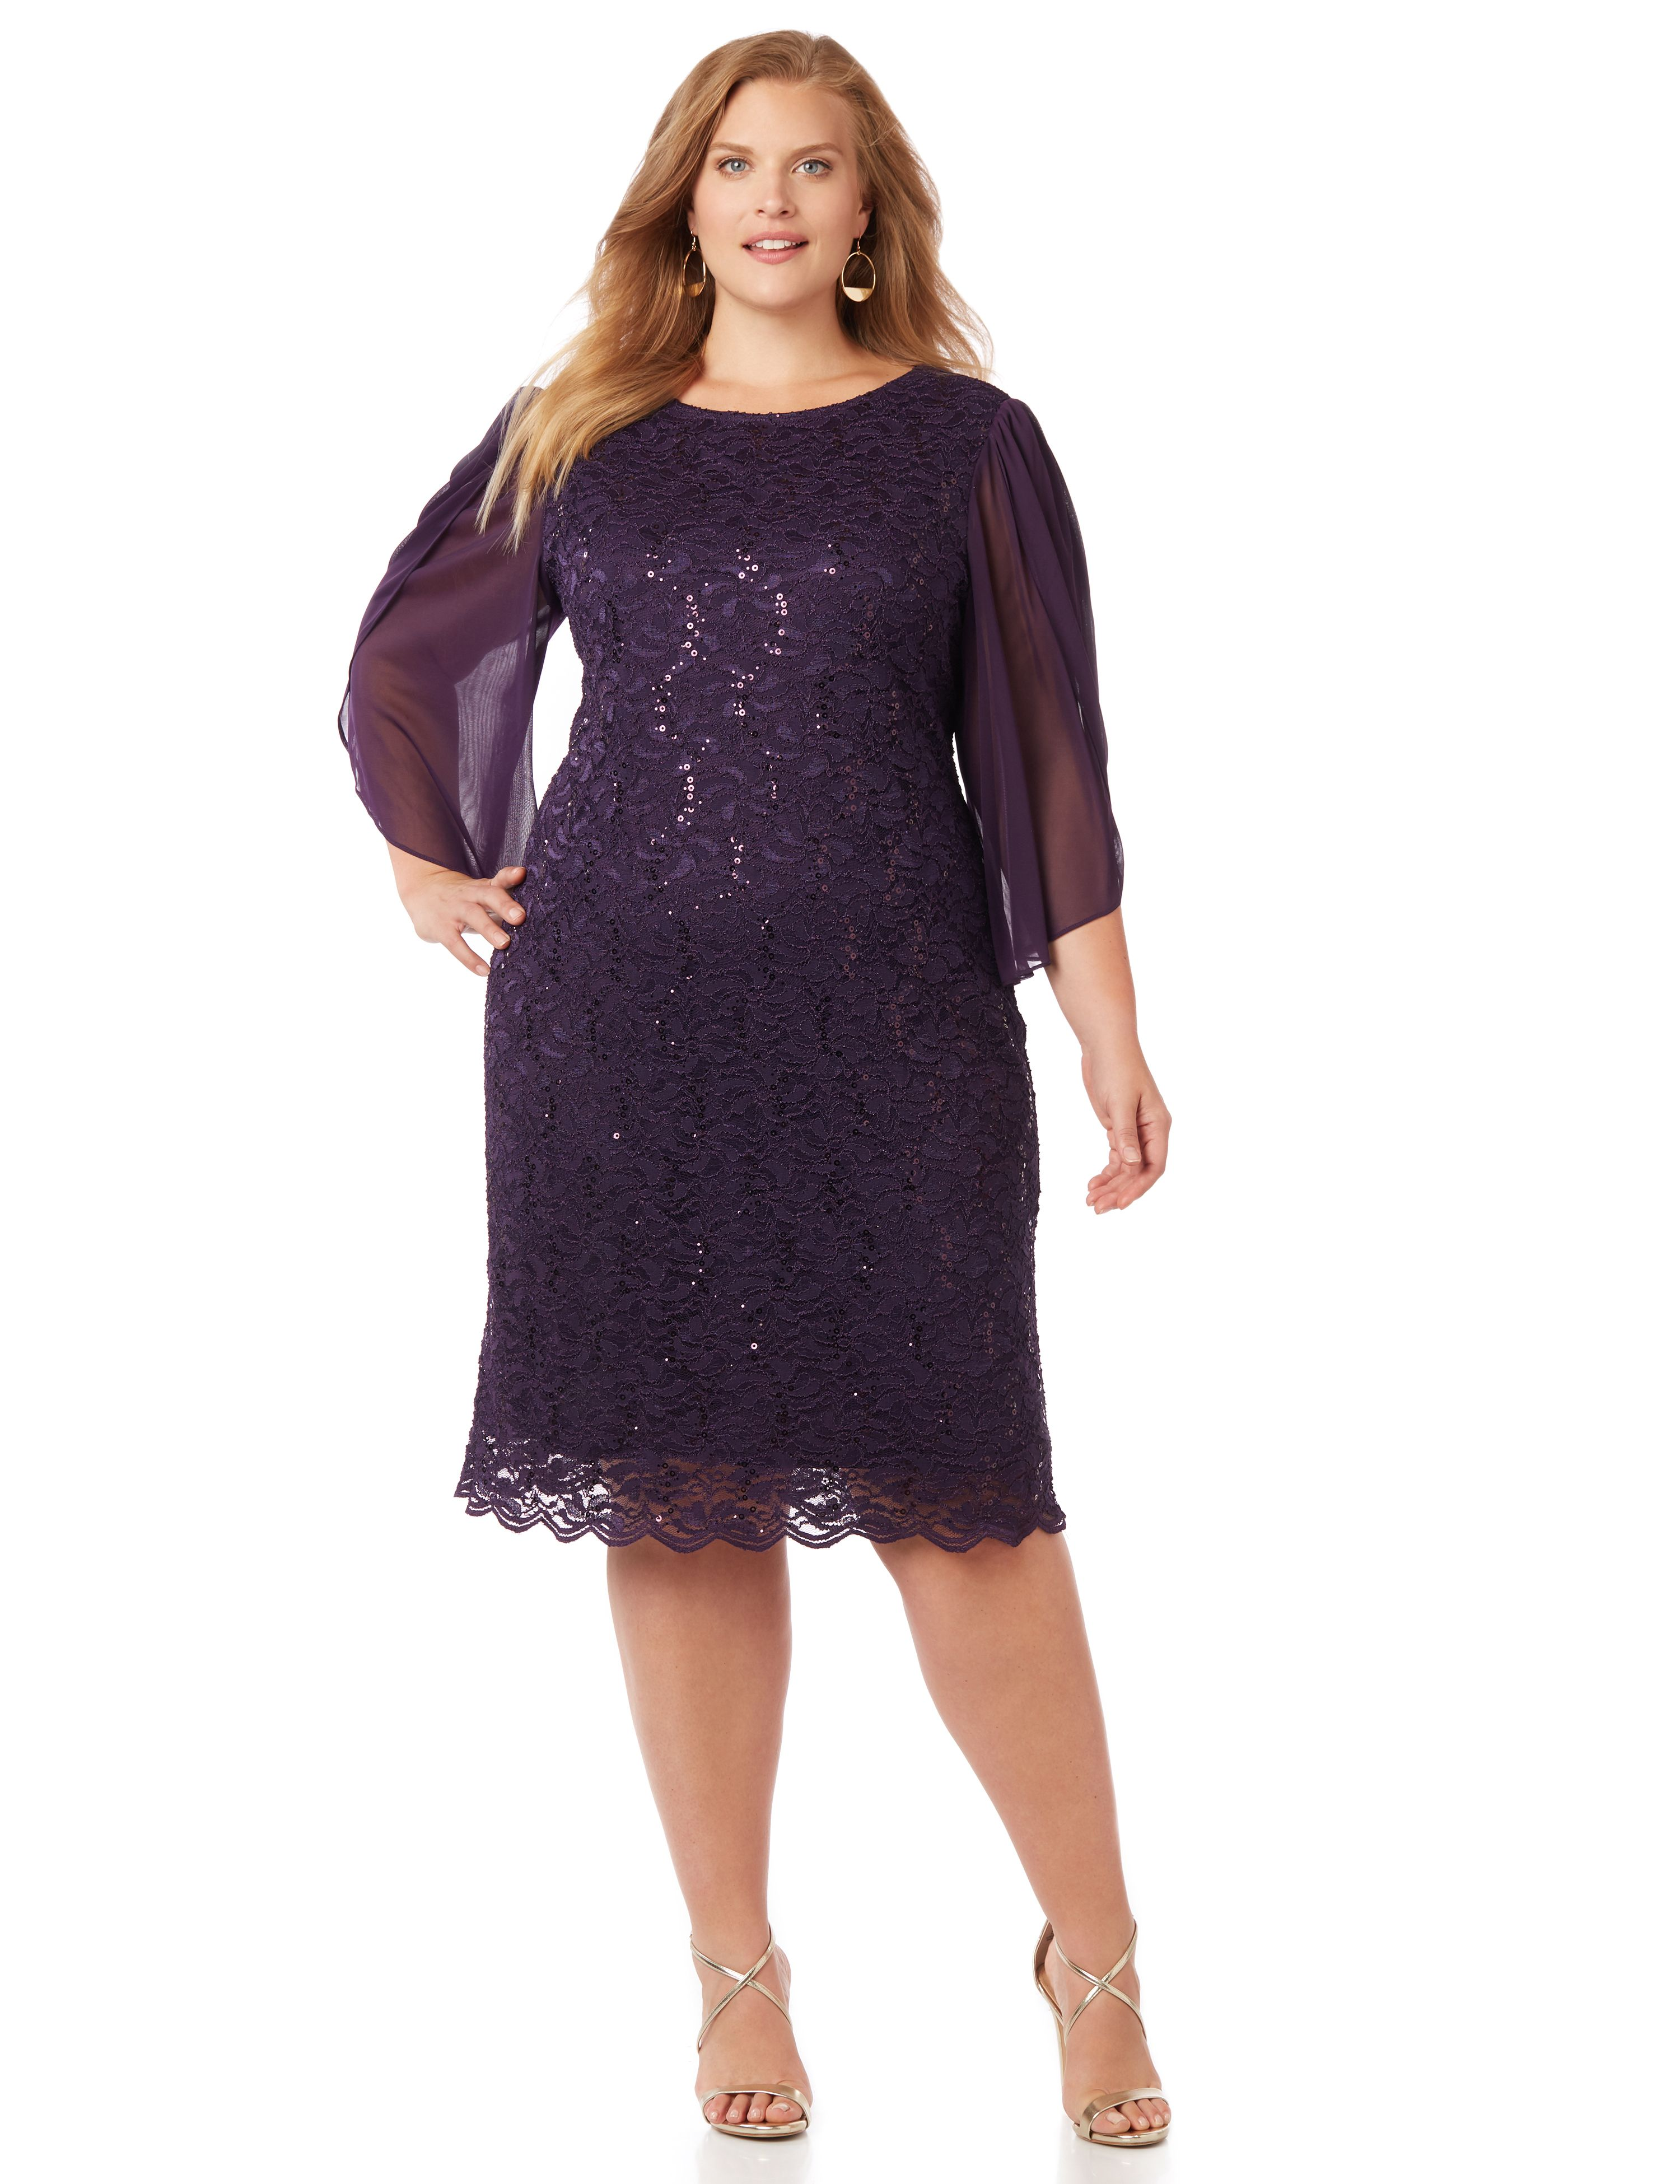 Plus Size Evening Dresses: Formal Dresses & Gowns | Catherines